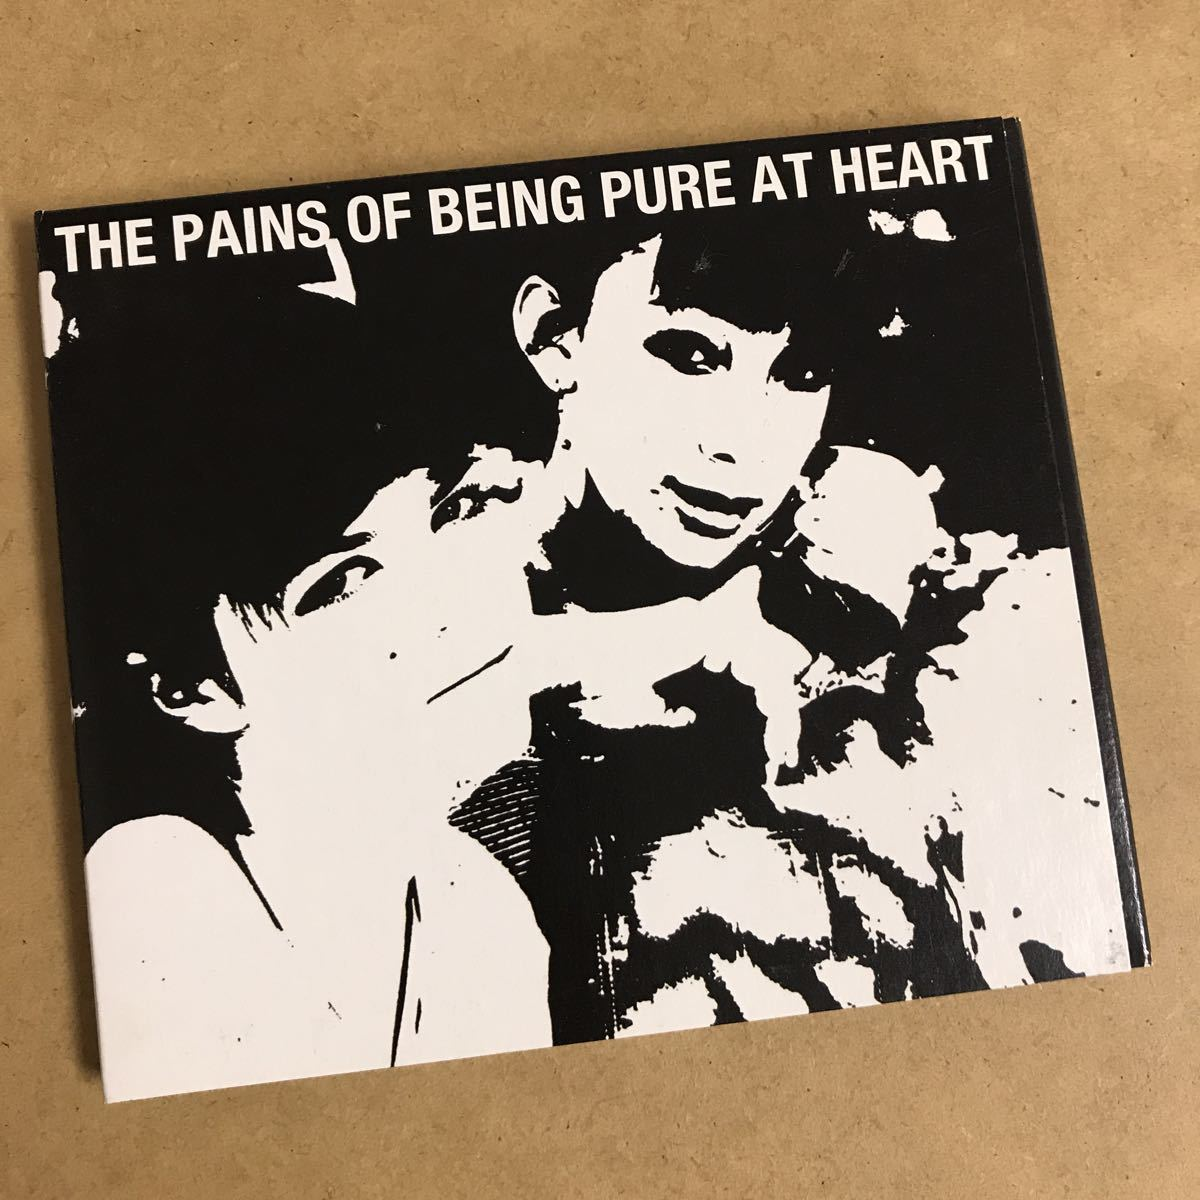 The Pains of Being Pure at Heart名盤1st slumberland輸入盤シューゲイザー/ネオサイケ/ドリームポップ/ギターポップ MY BLOODY VALENTINE_画像1